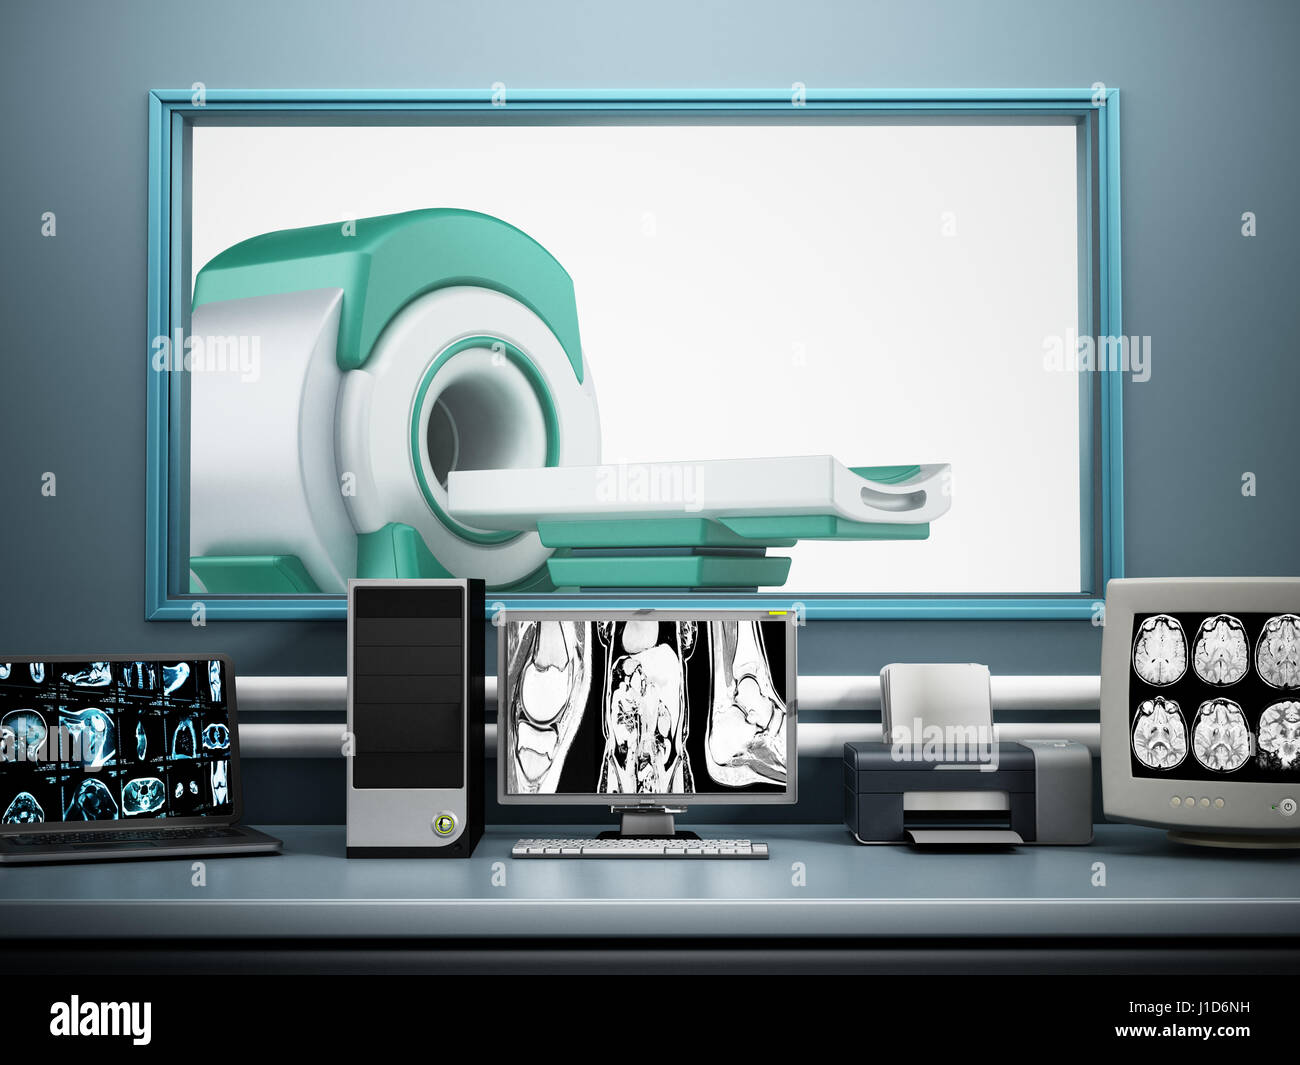 Magnetic Resonance Imaging MRI device and computer systems. - Stock Image